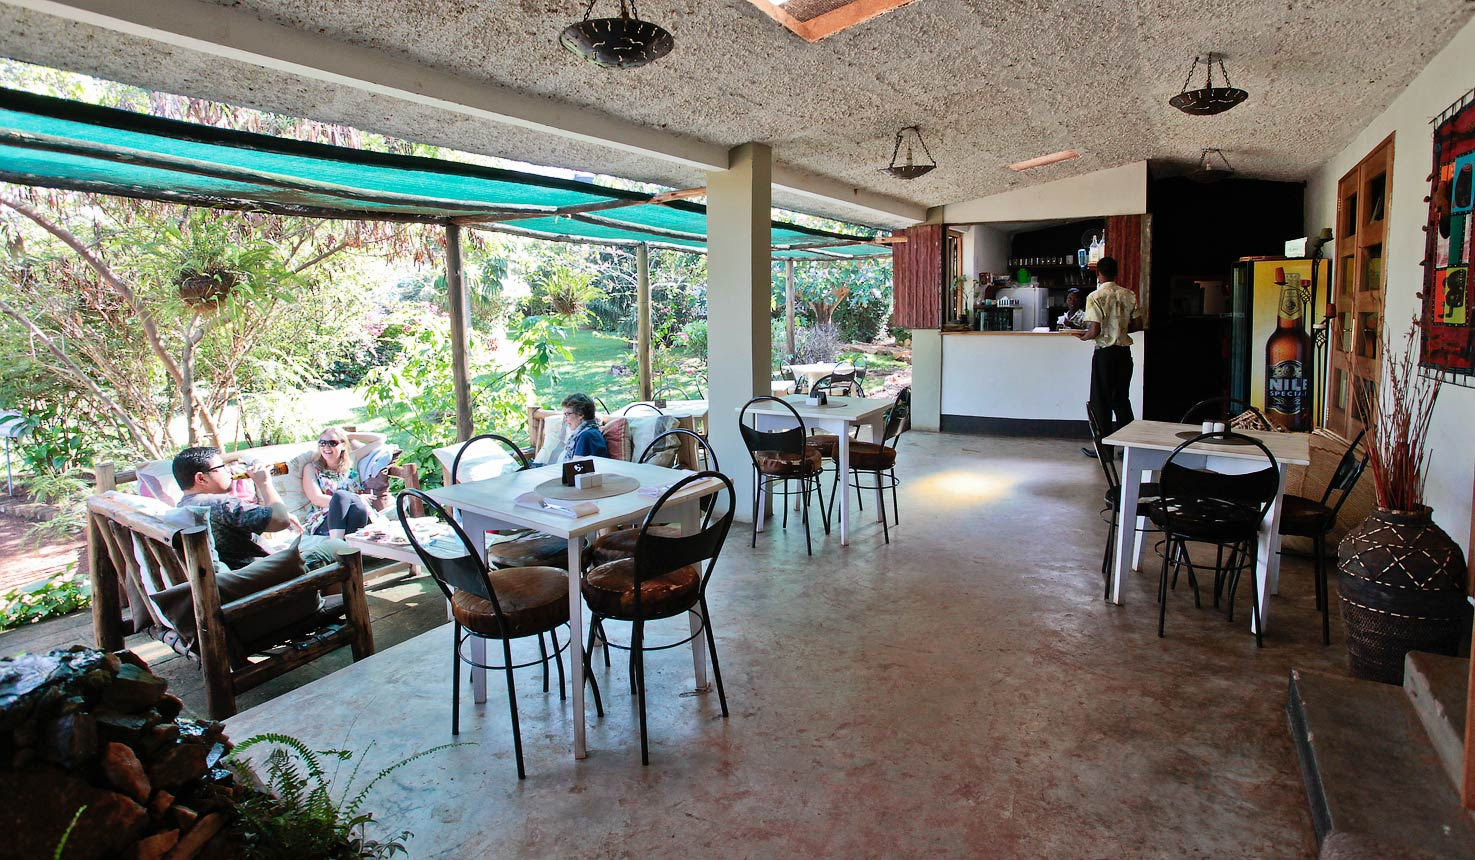 Gately Inn Coffee Lounge - Best Restaurant and Coffee Shop in Entebbe